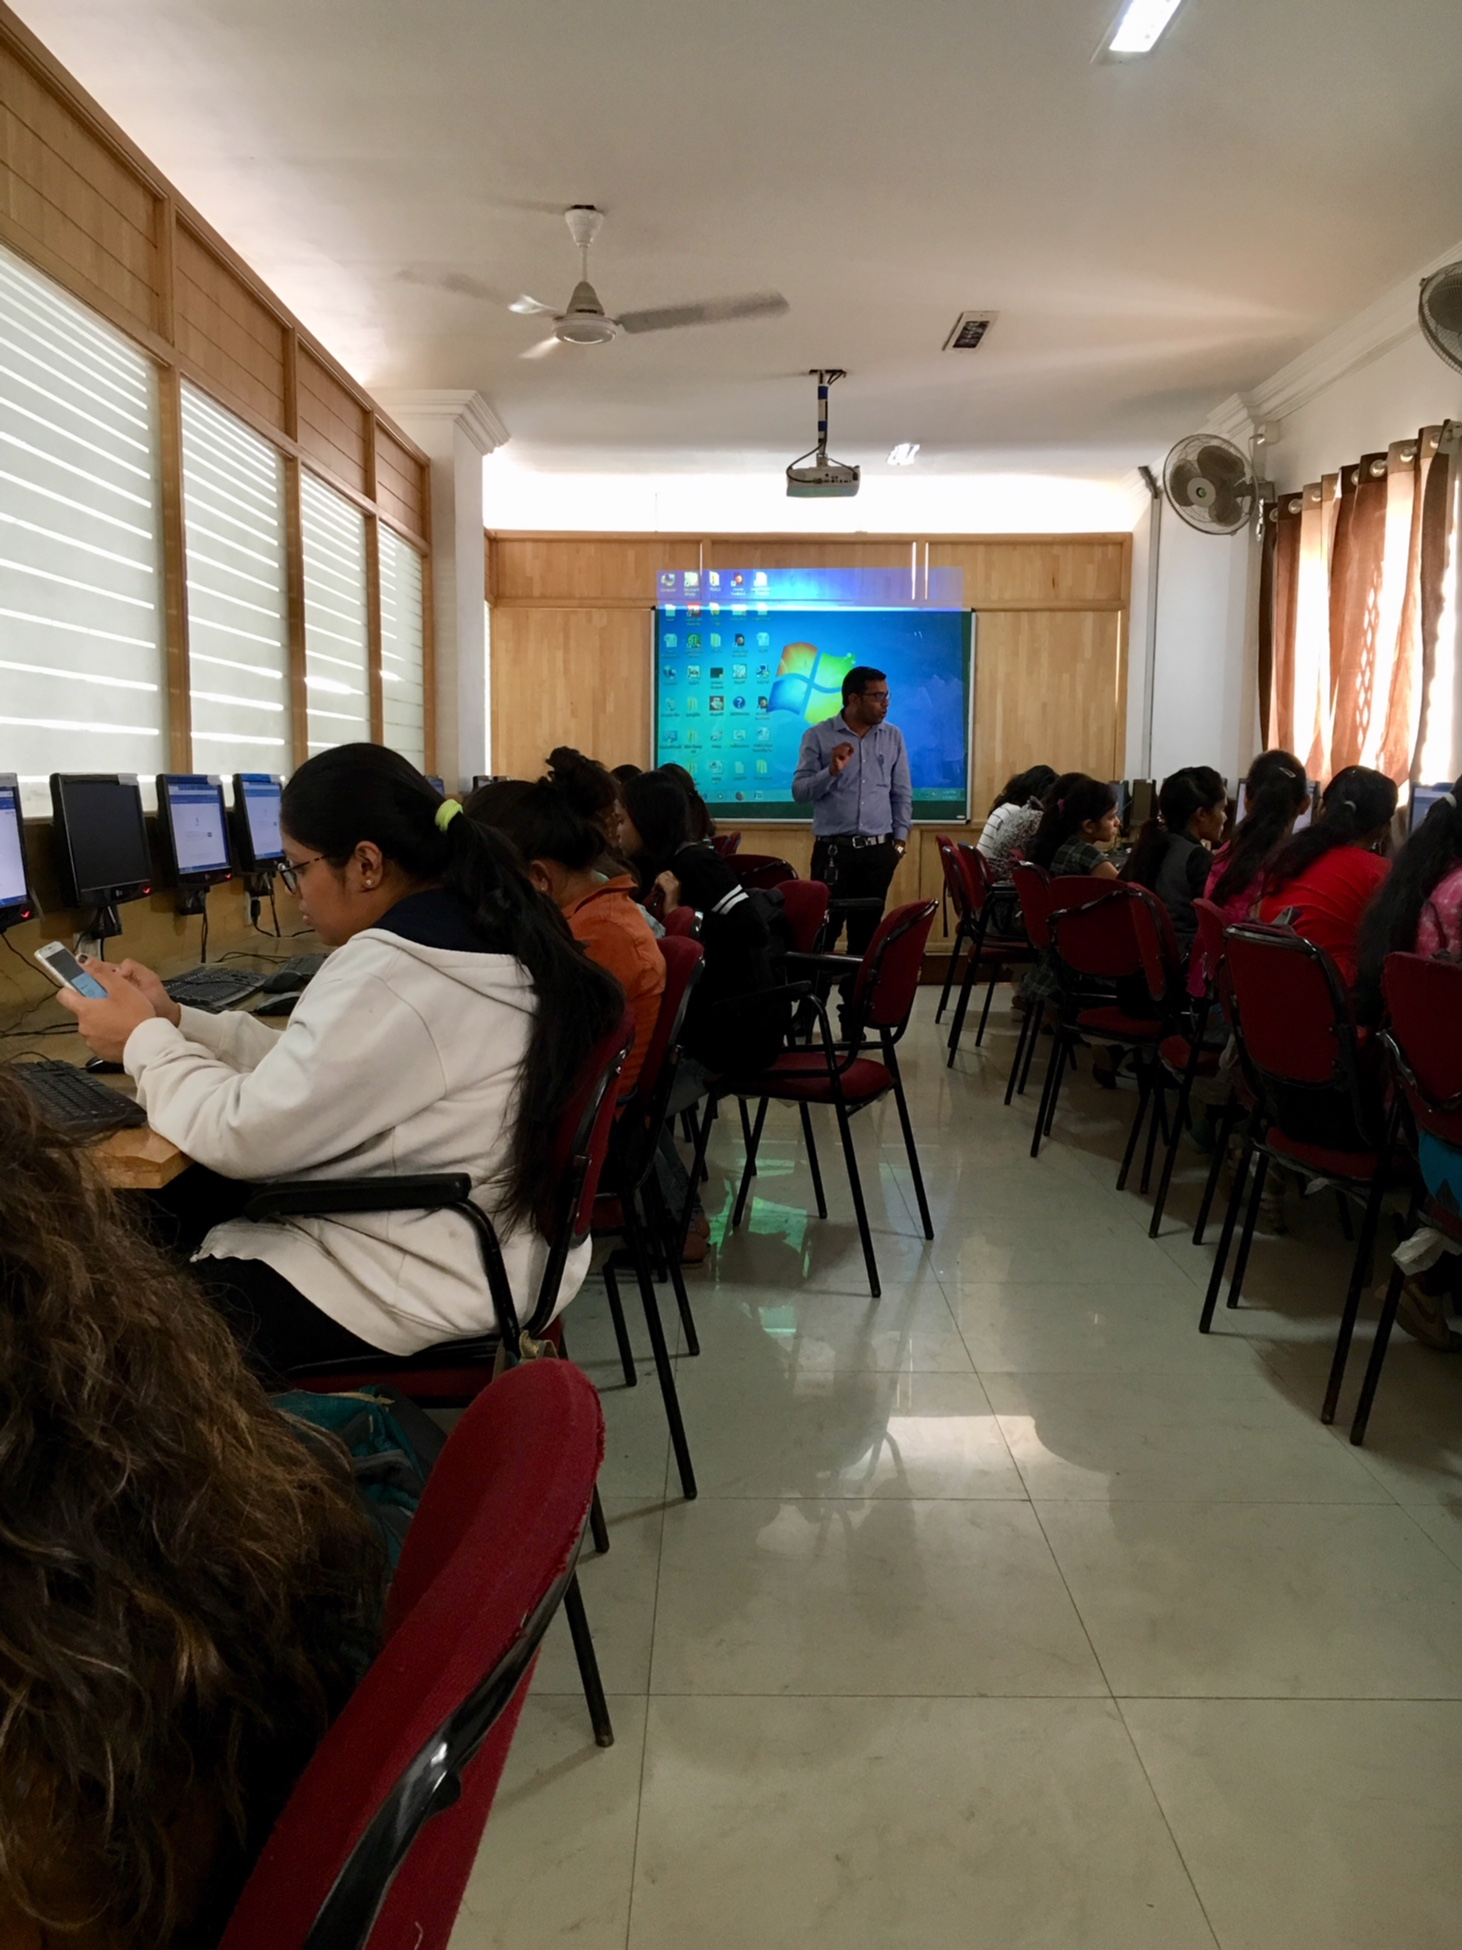 Students learing how to access databases on mobile phones